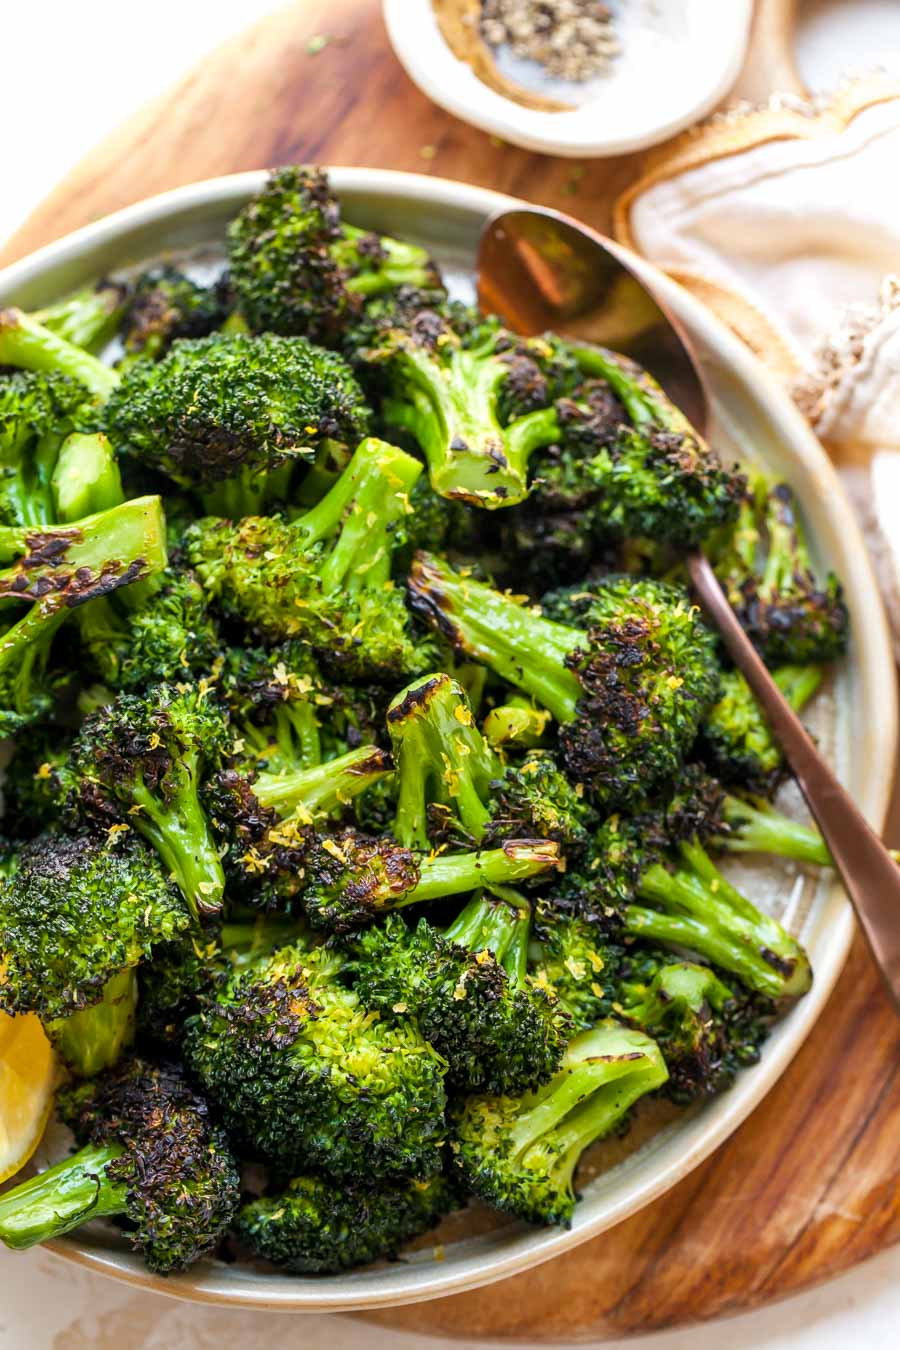 Sauteed Broccoli in the Skillet with Lemon and Garlic